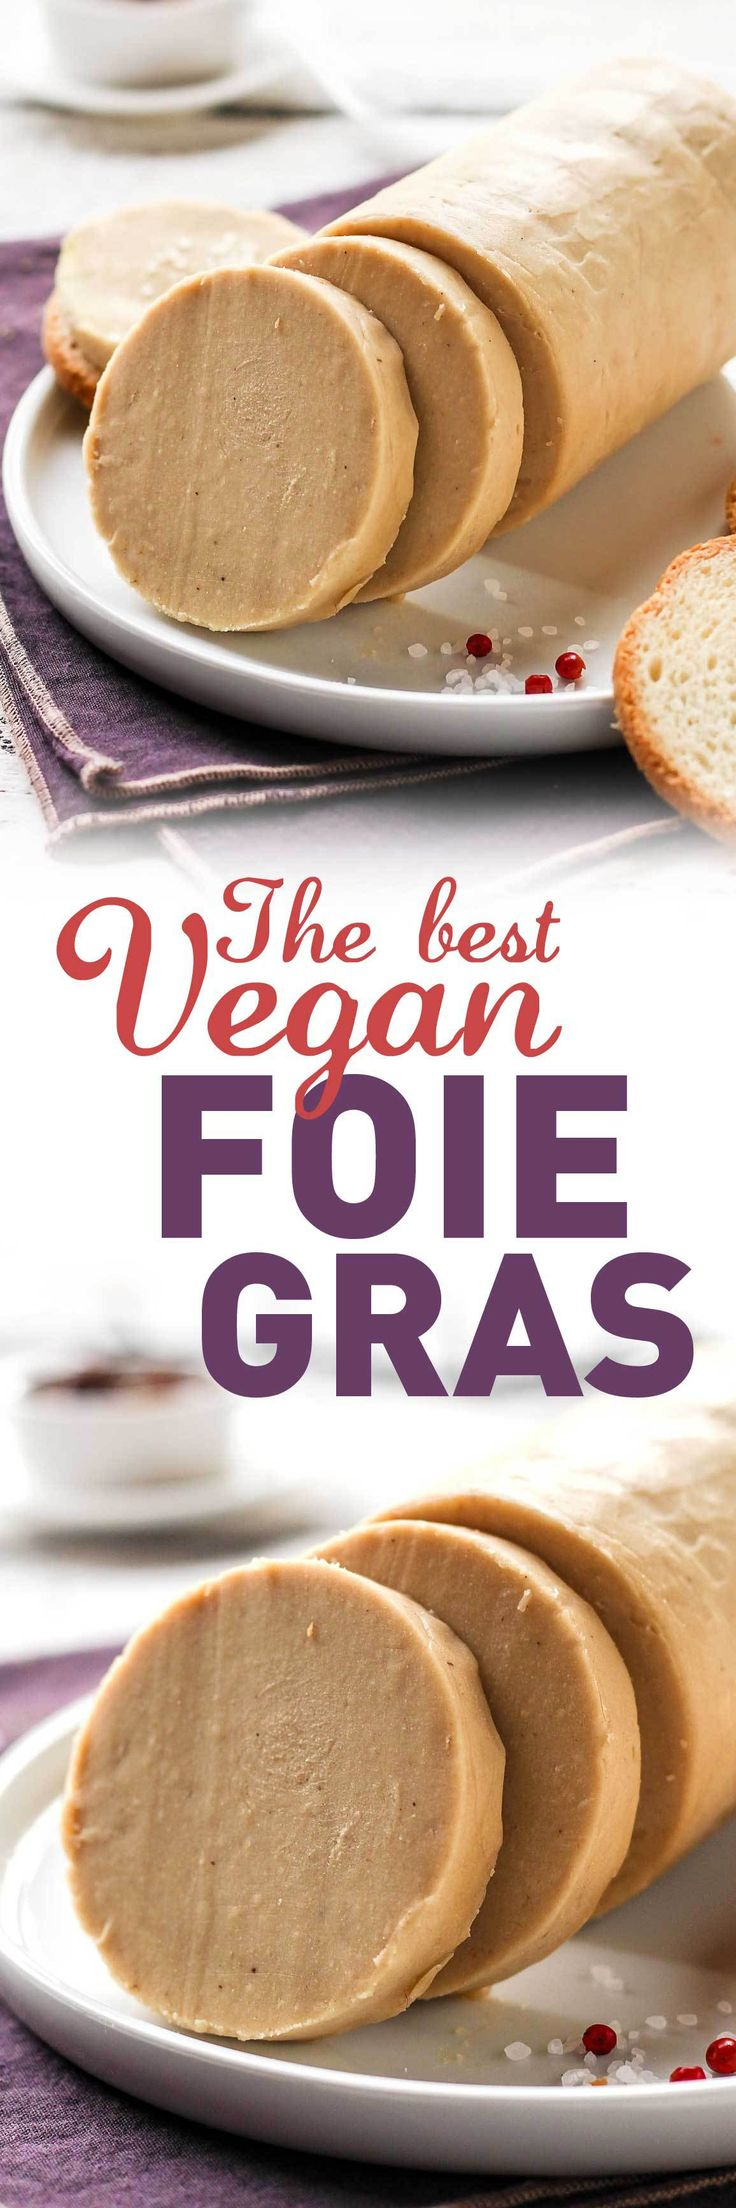 The Best Vegan Foie Gras